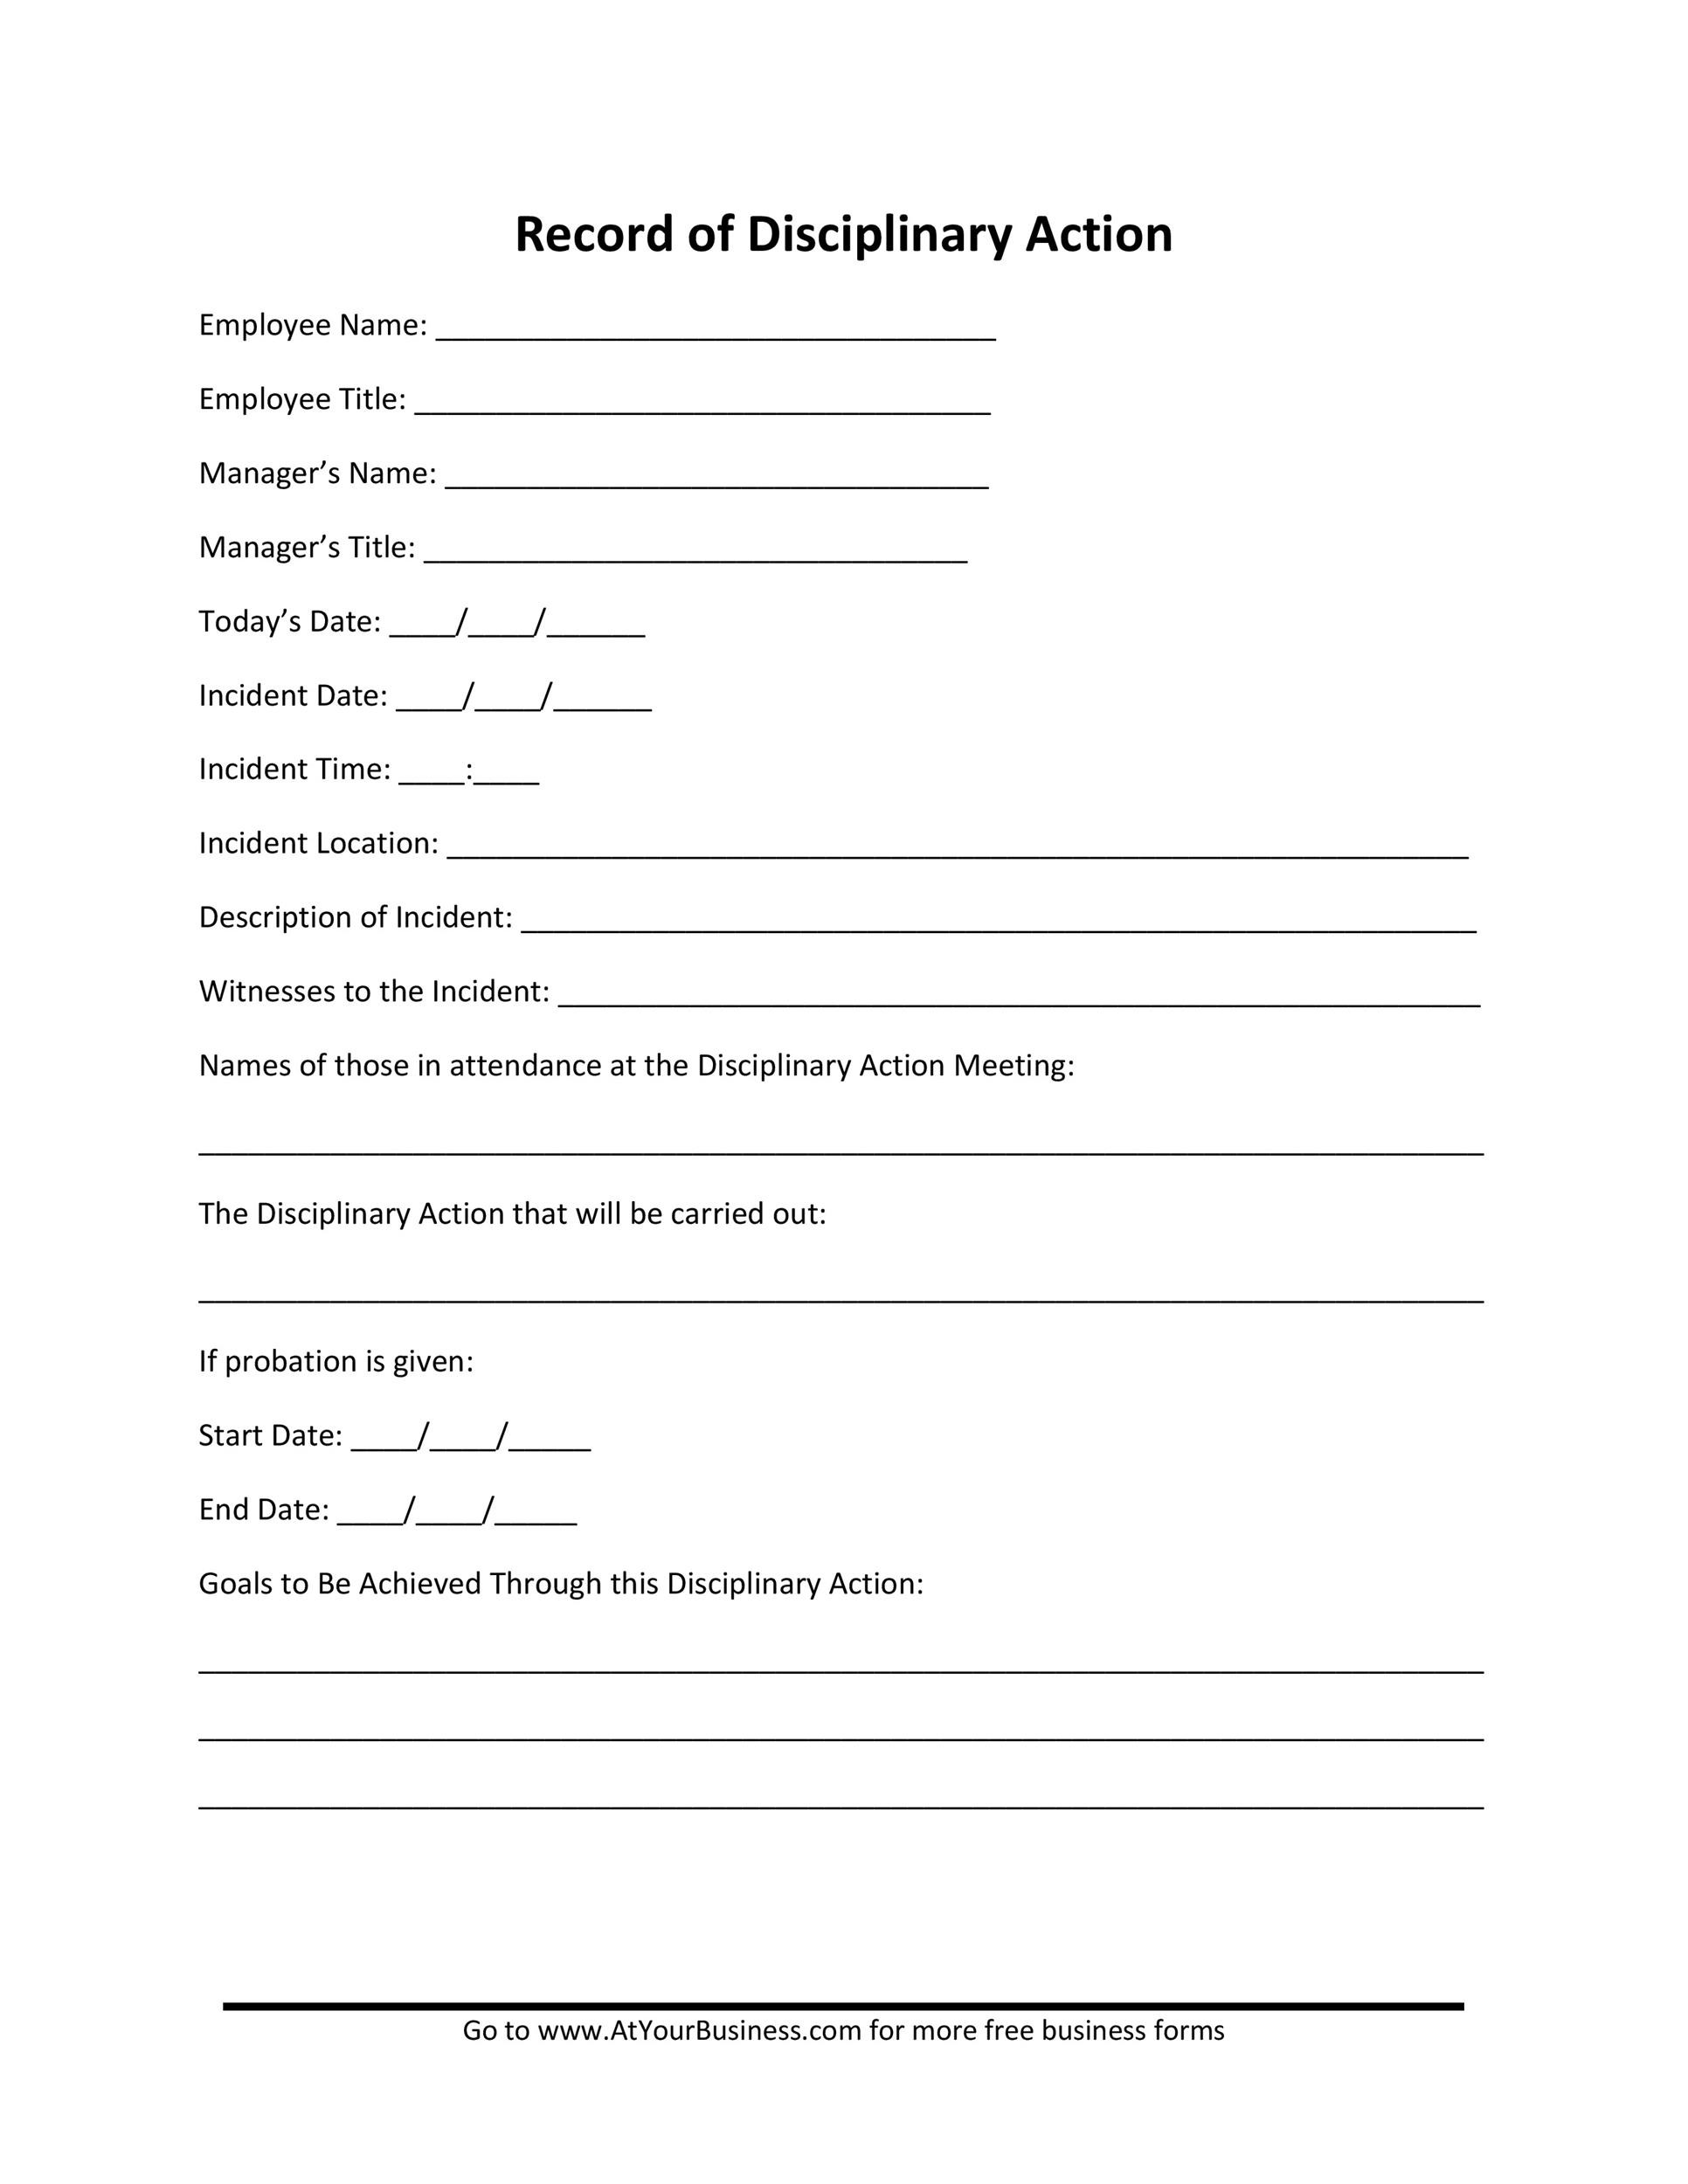 Free Disciplinary Action Form 14